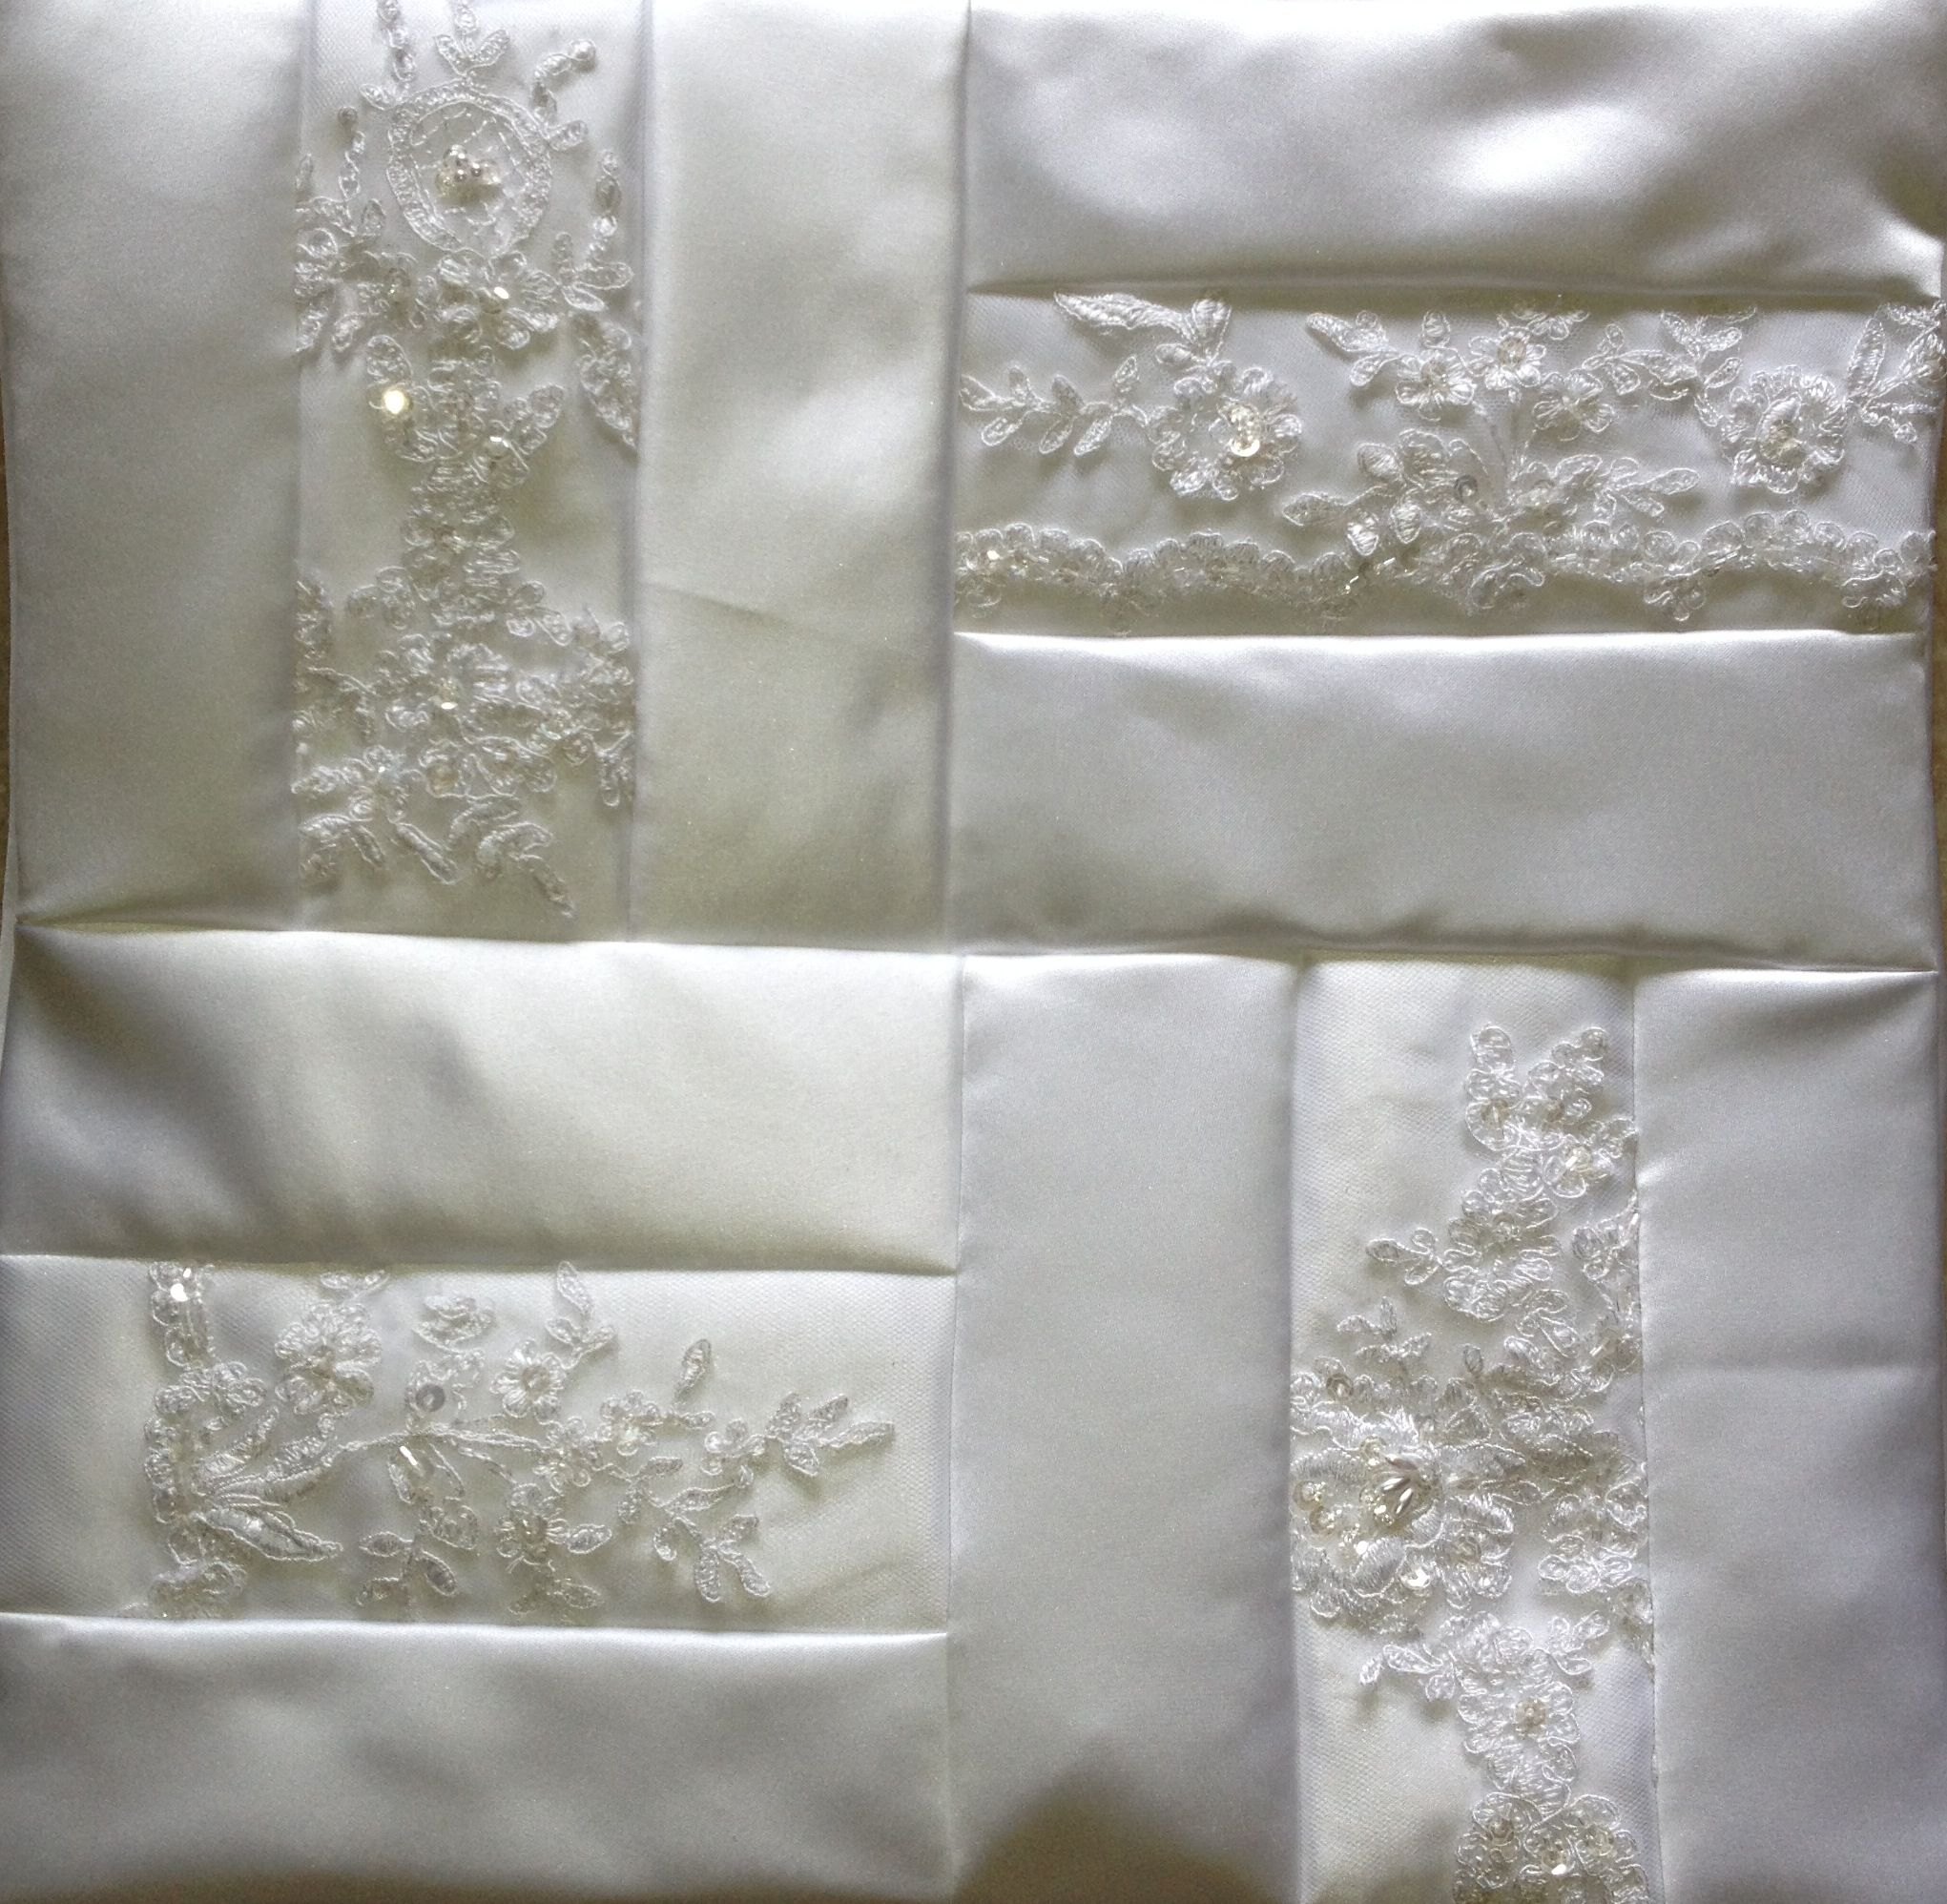 Recycled Wedding Gowns: Quilts Using Old Wedding Dress - Google Search